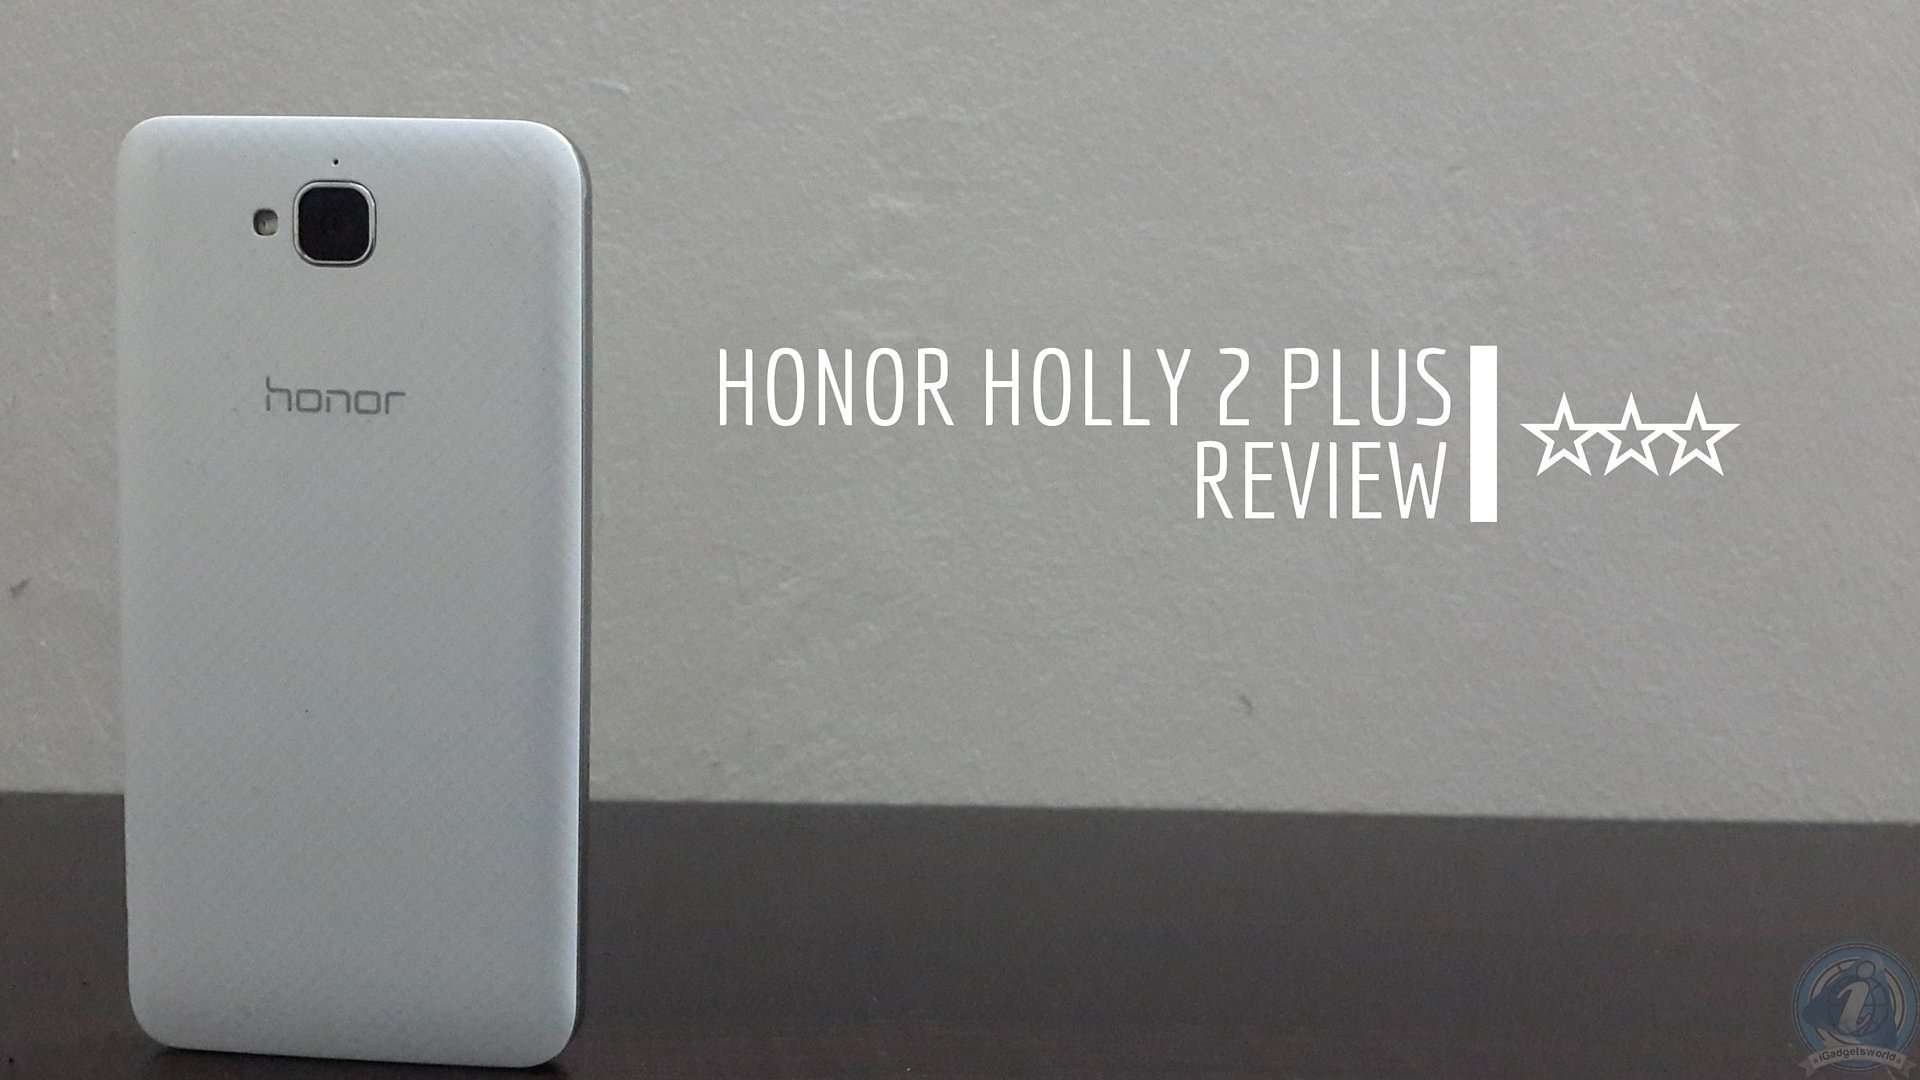 honor holly 2 plus review